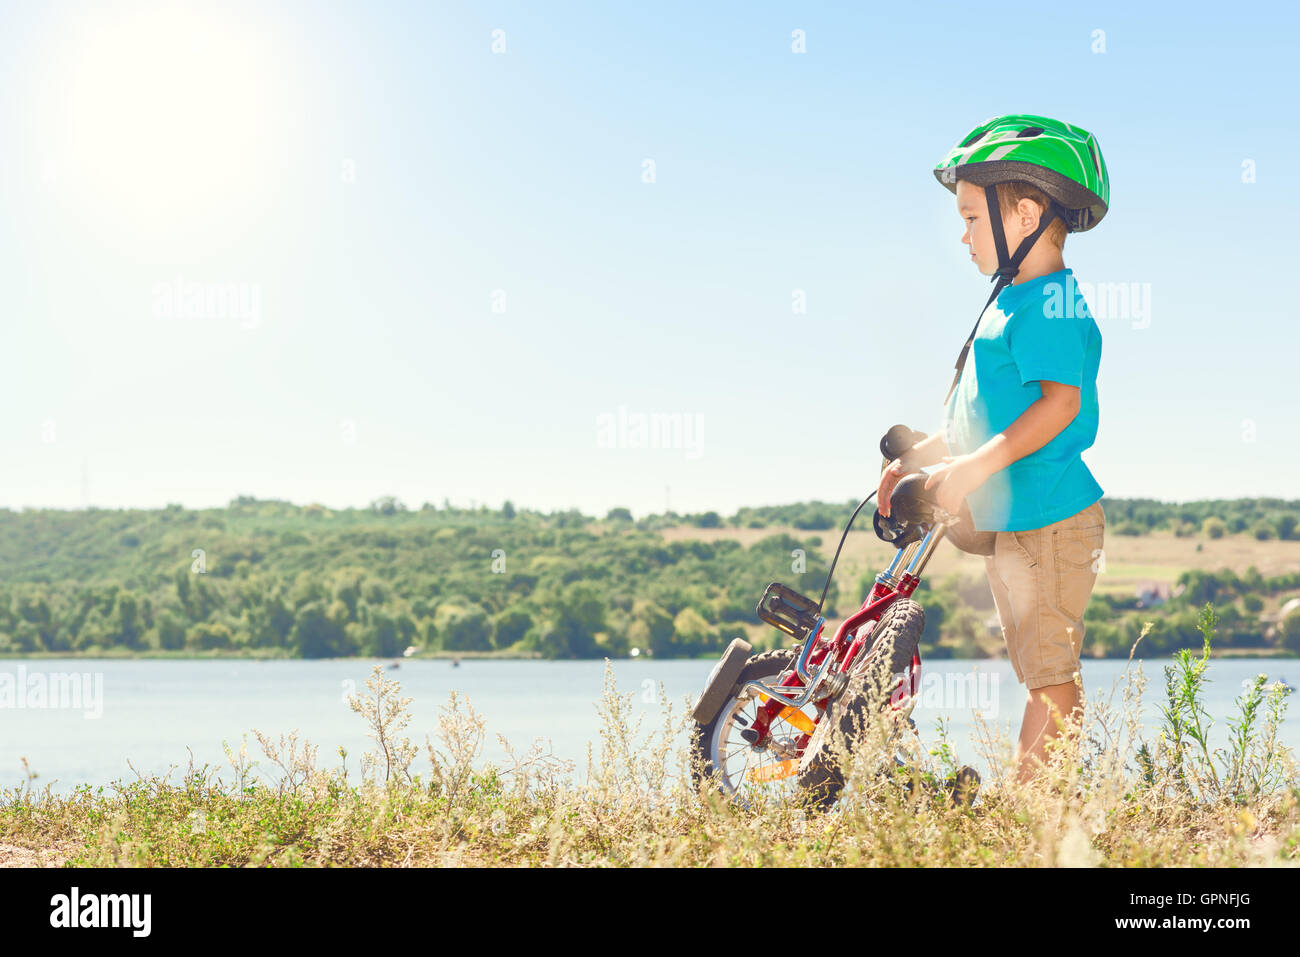 Child riding a bicycle - Stock Image